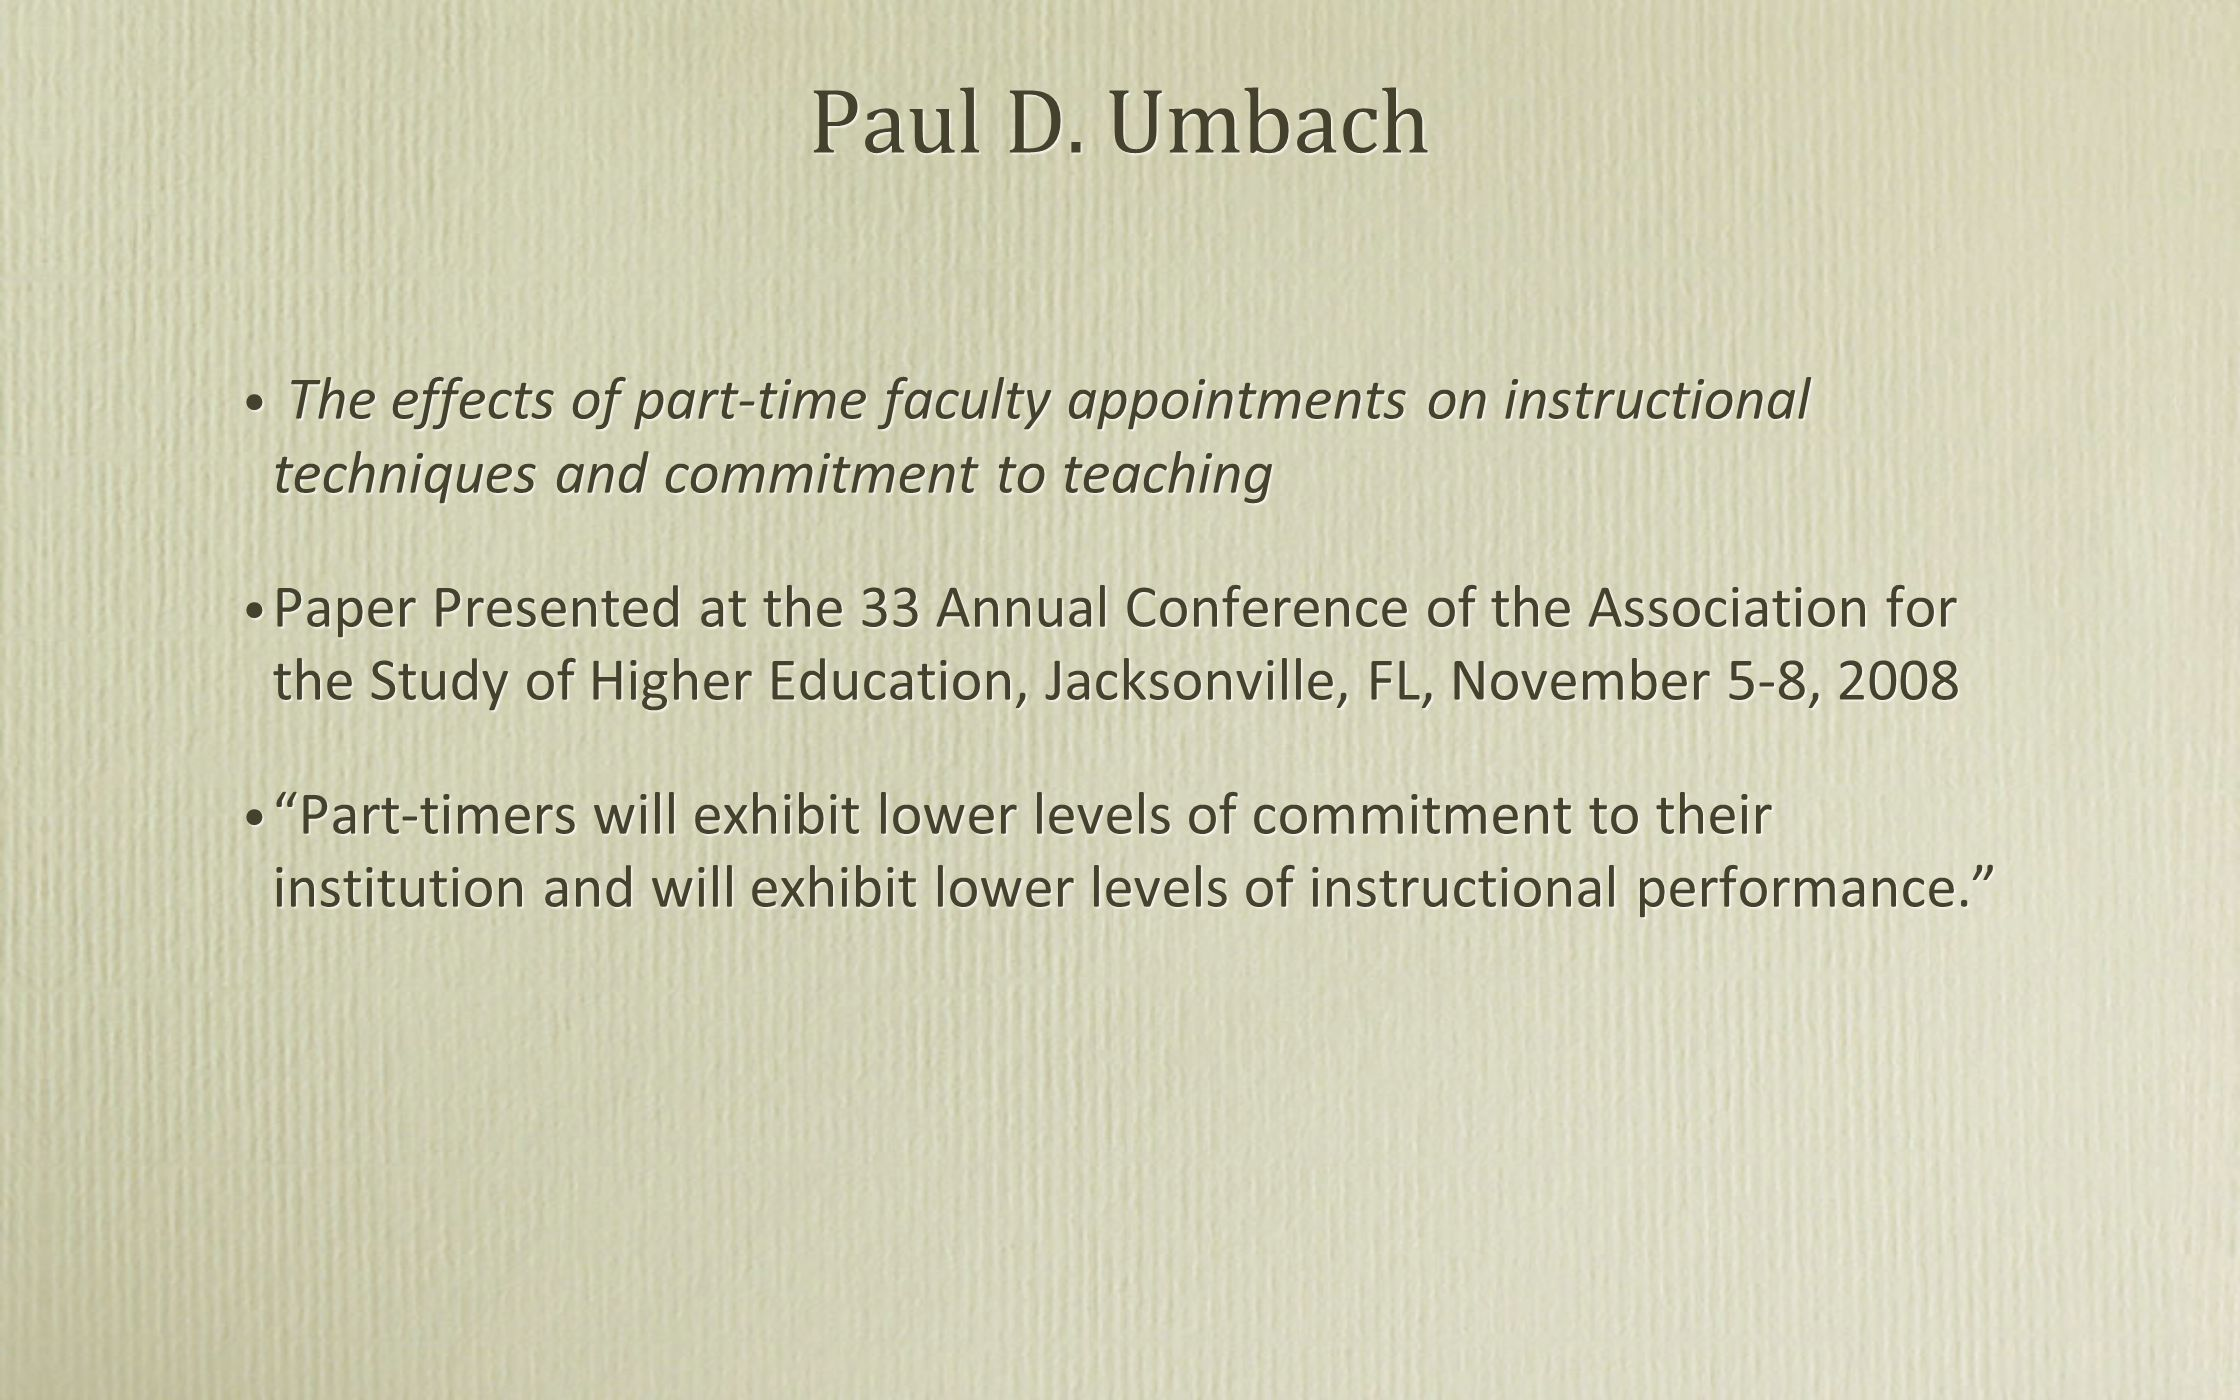 Paul D. Umbach The effects of part-time faculty appointments on instructional techniques and commitment to teaching Paper Presented at the 33 Annual C